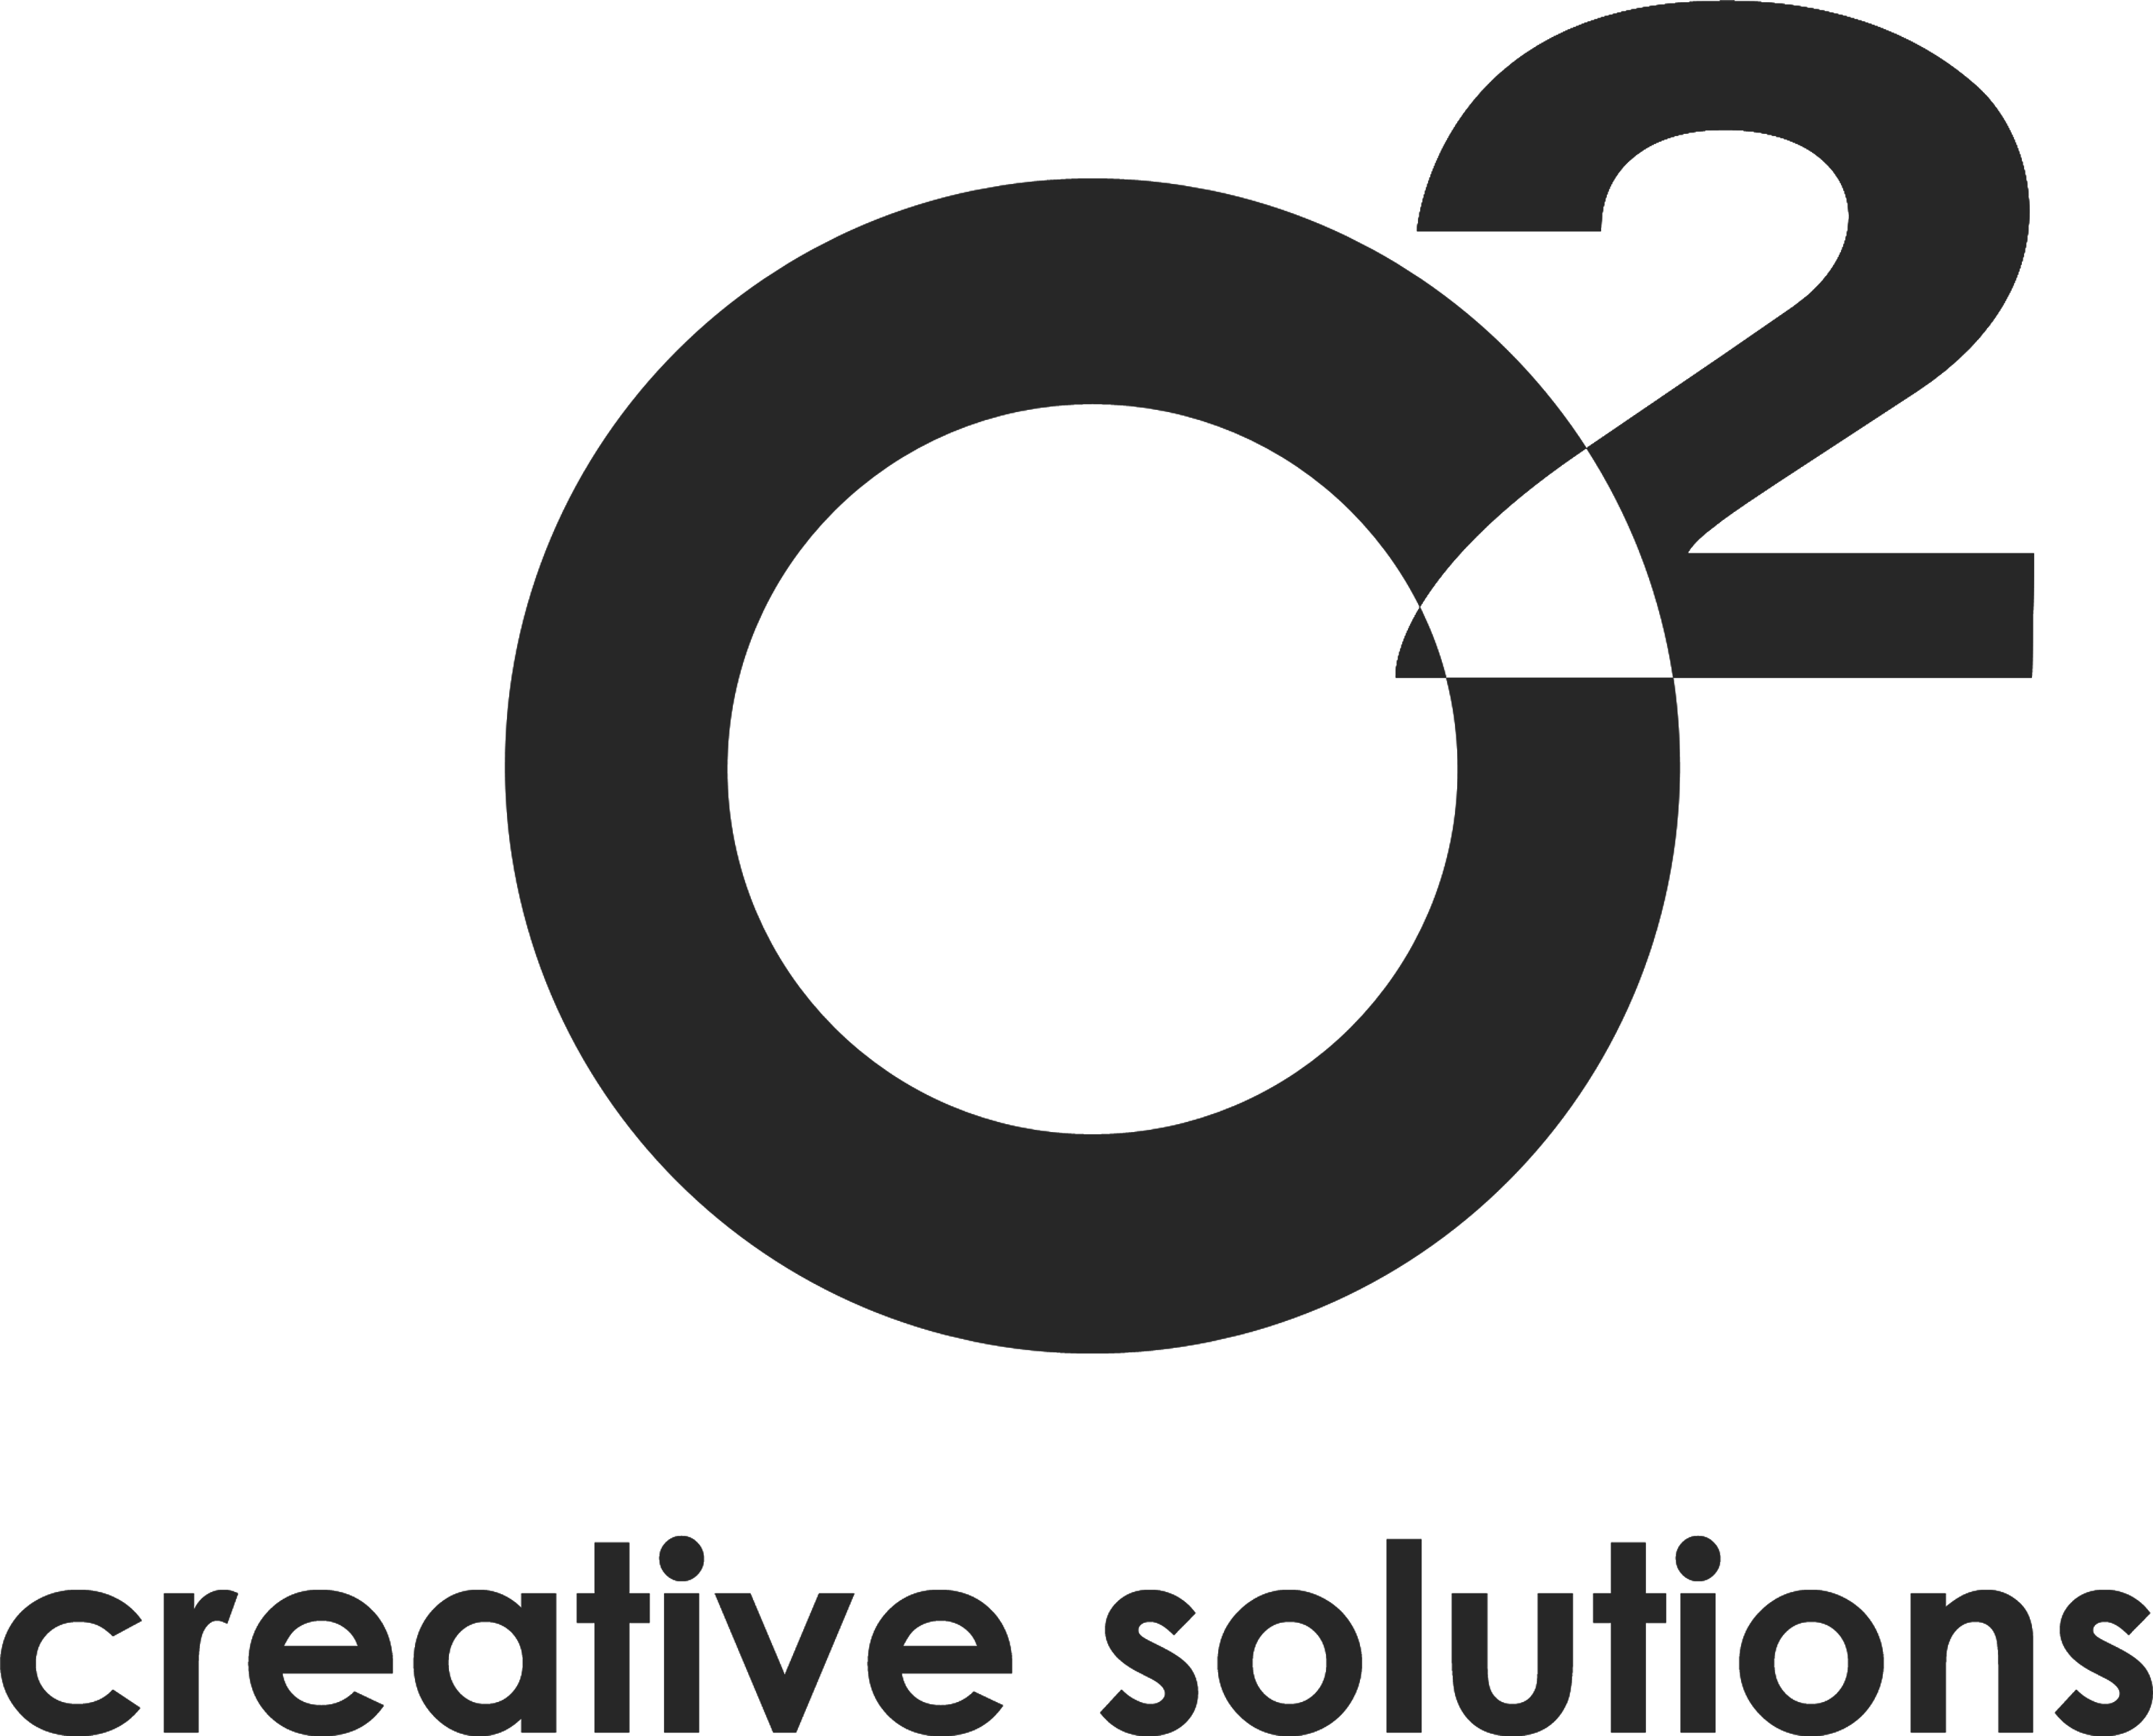 o2 Creative Solutions